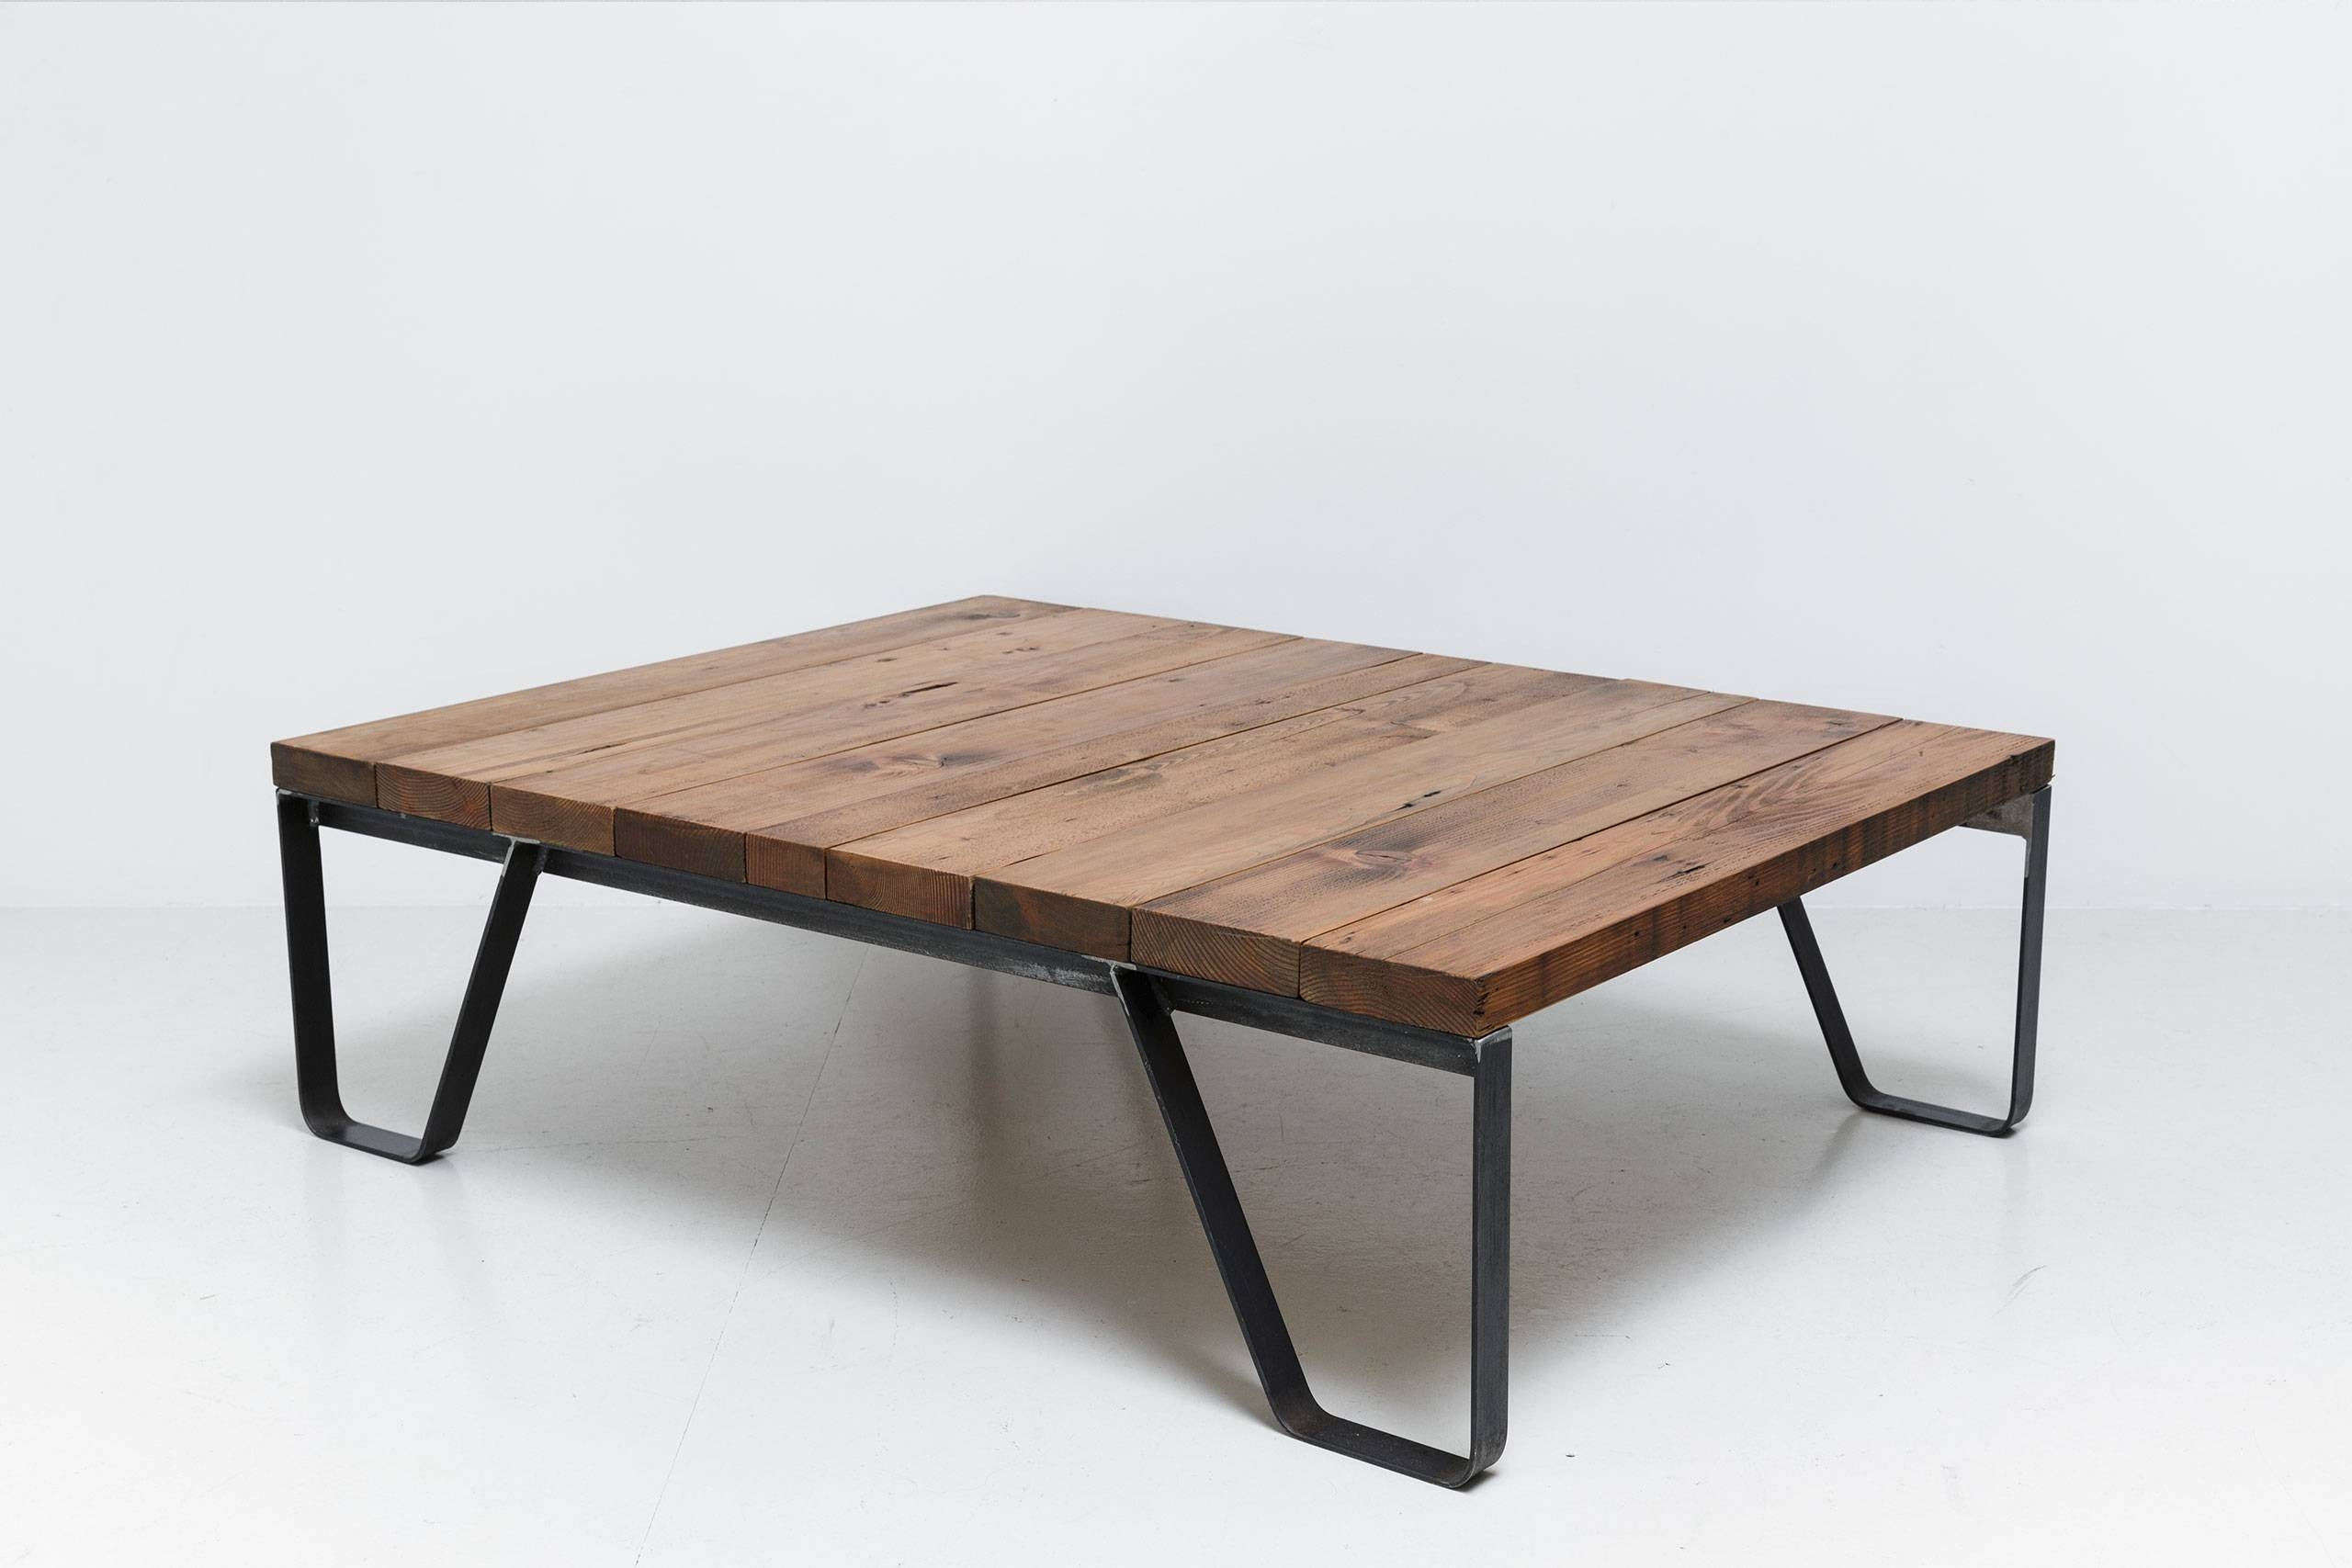 Coffee Table: Awesome Good Looking Industrial Coffee Tables Design with regard to Industrial Coffee Tables (Image 3 of 15)